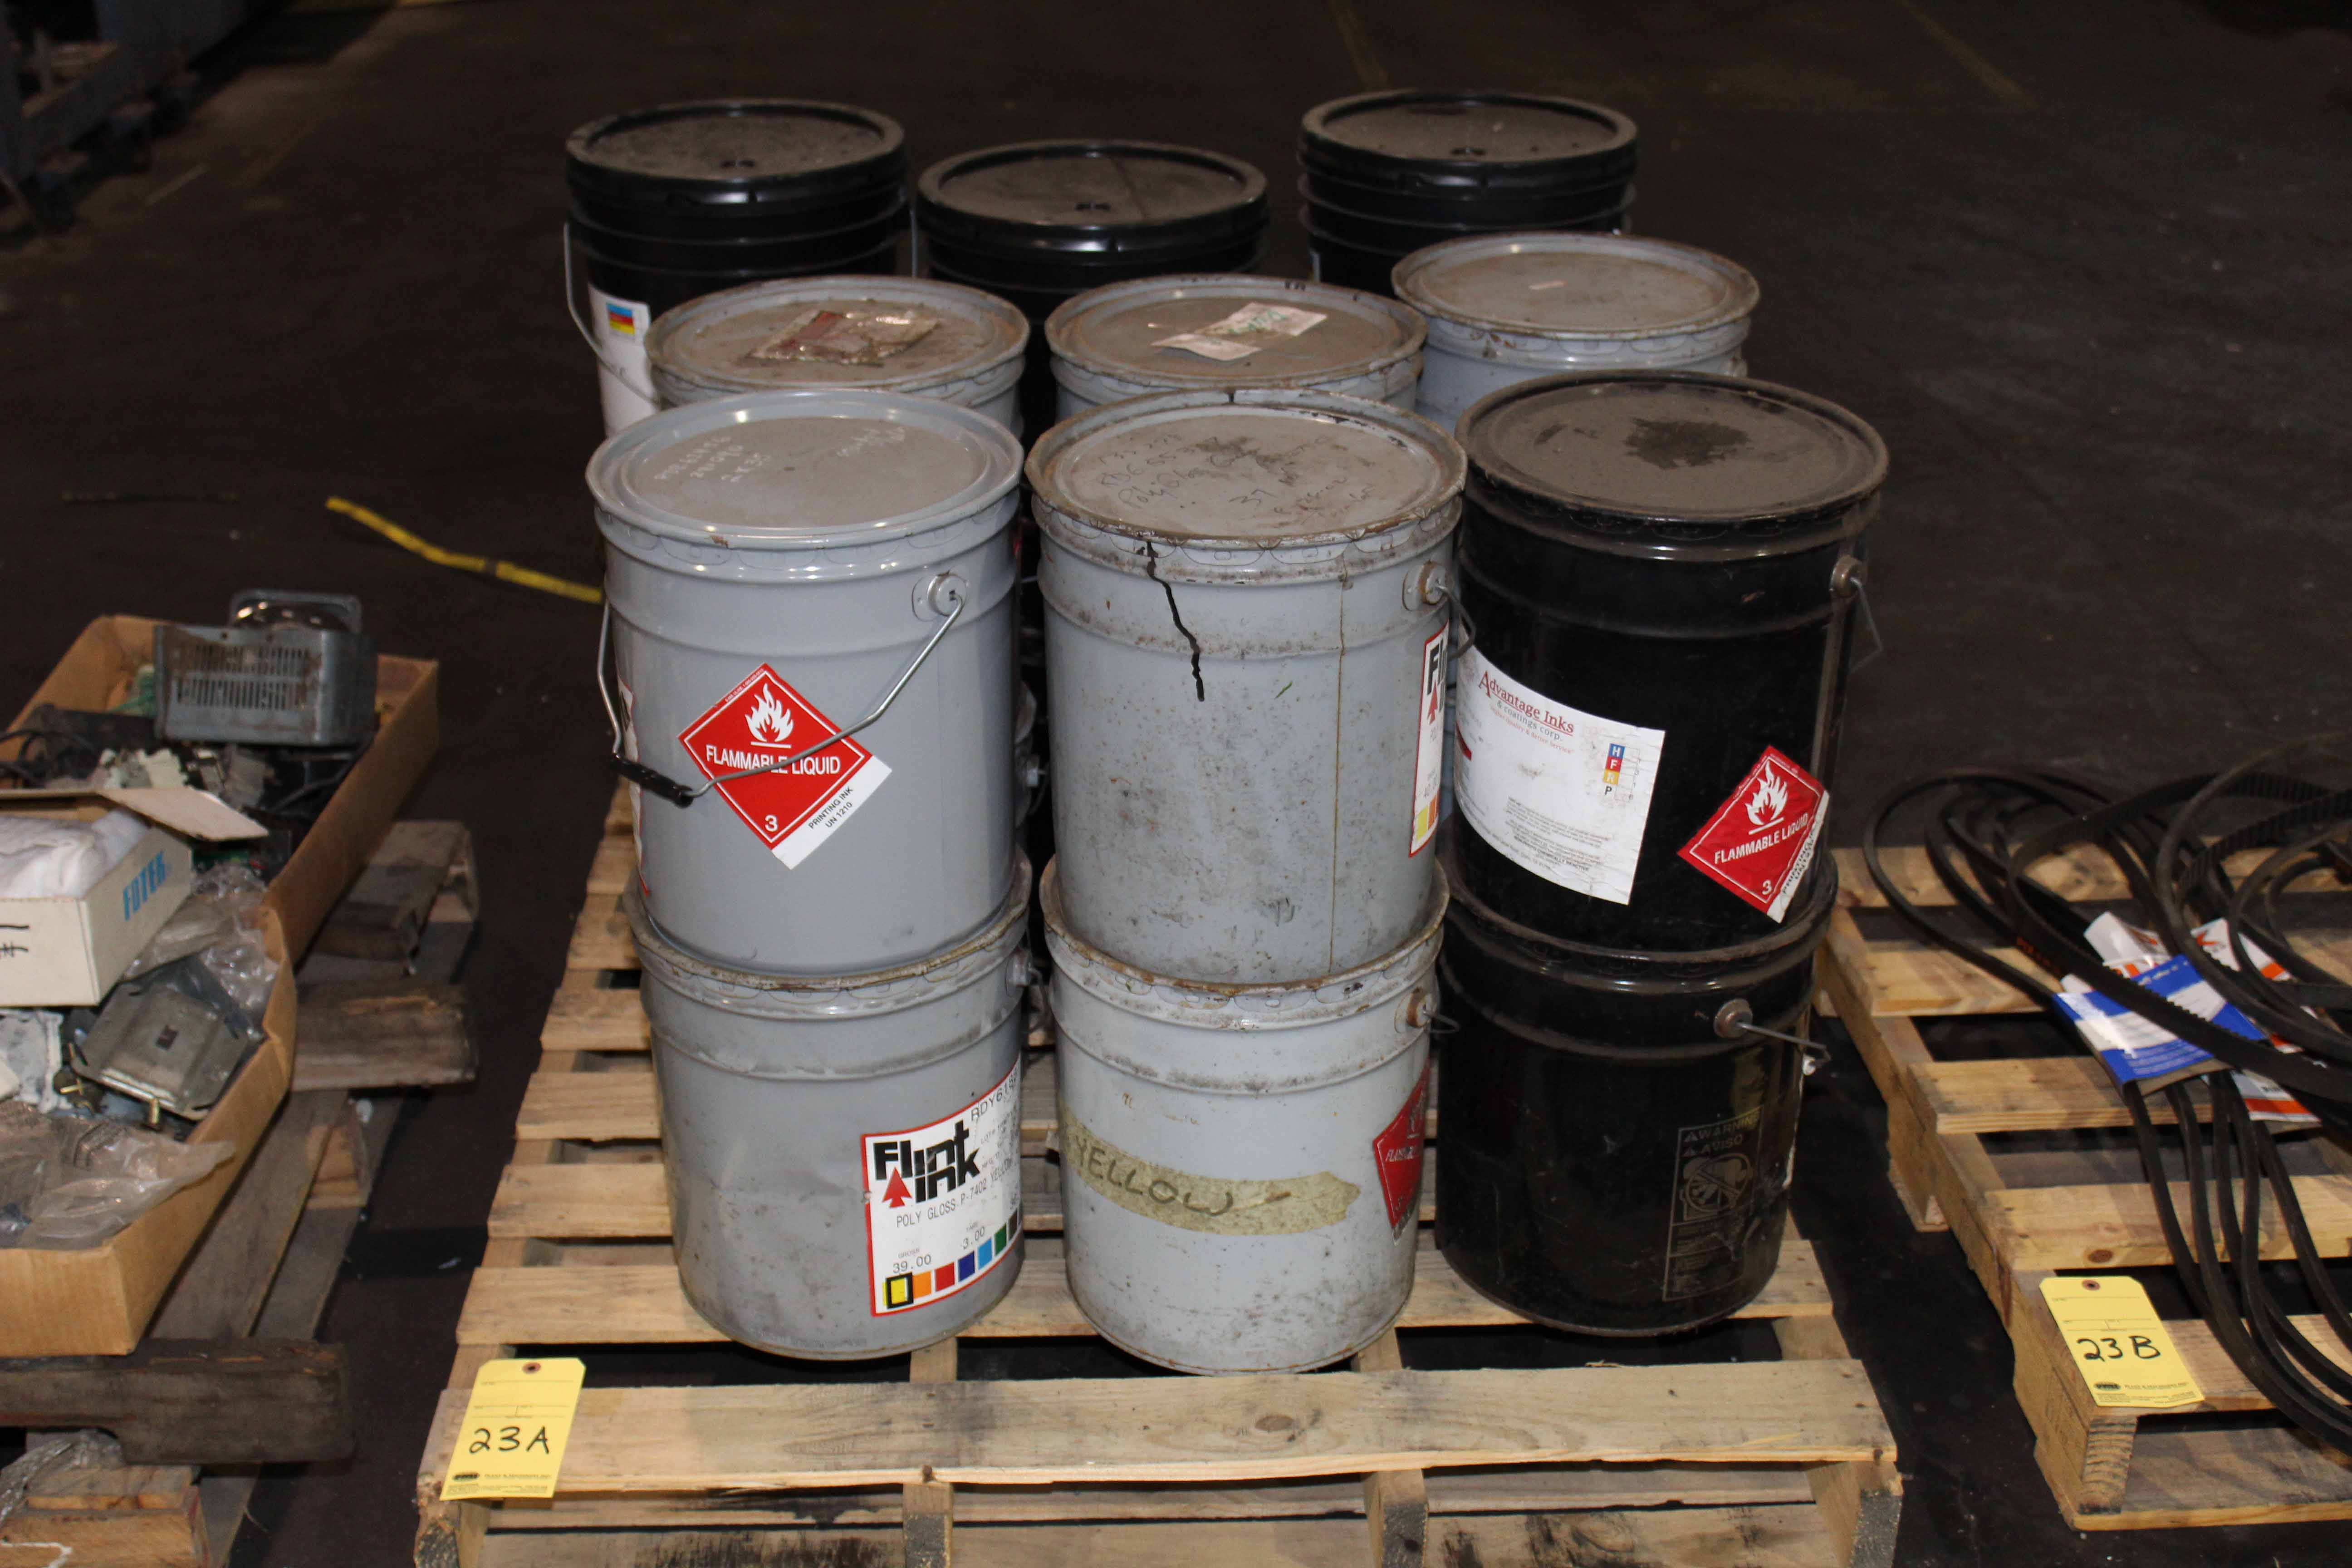 Lot 23A - LOT OF 5 GALLON DRUMS OF PRINTING INK, APPROX. (18)